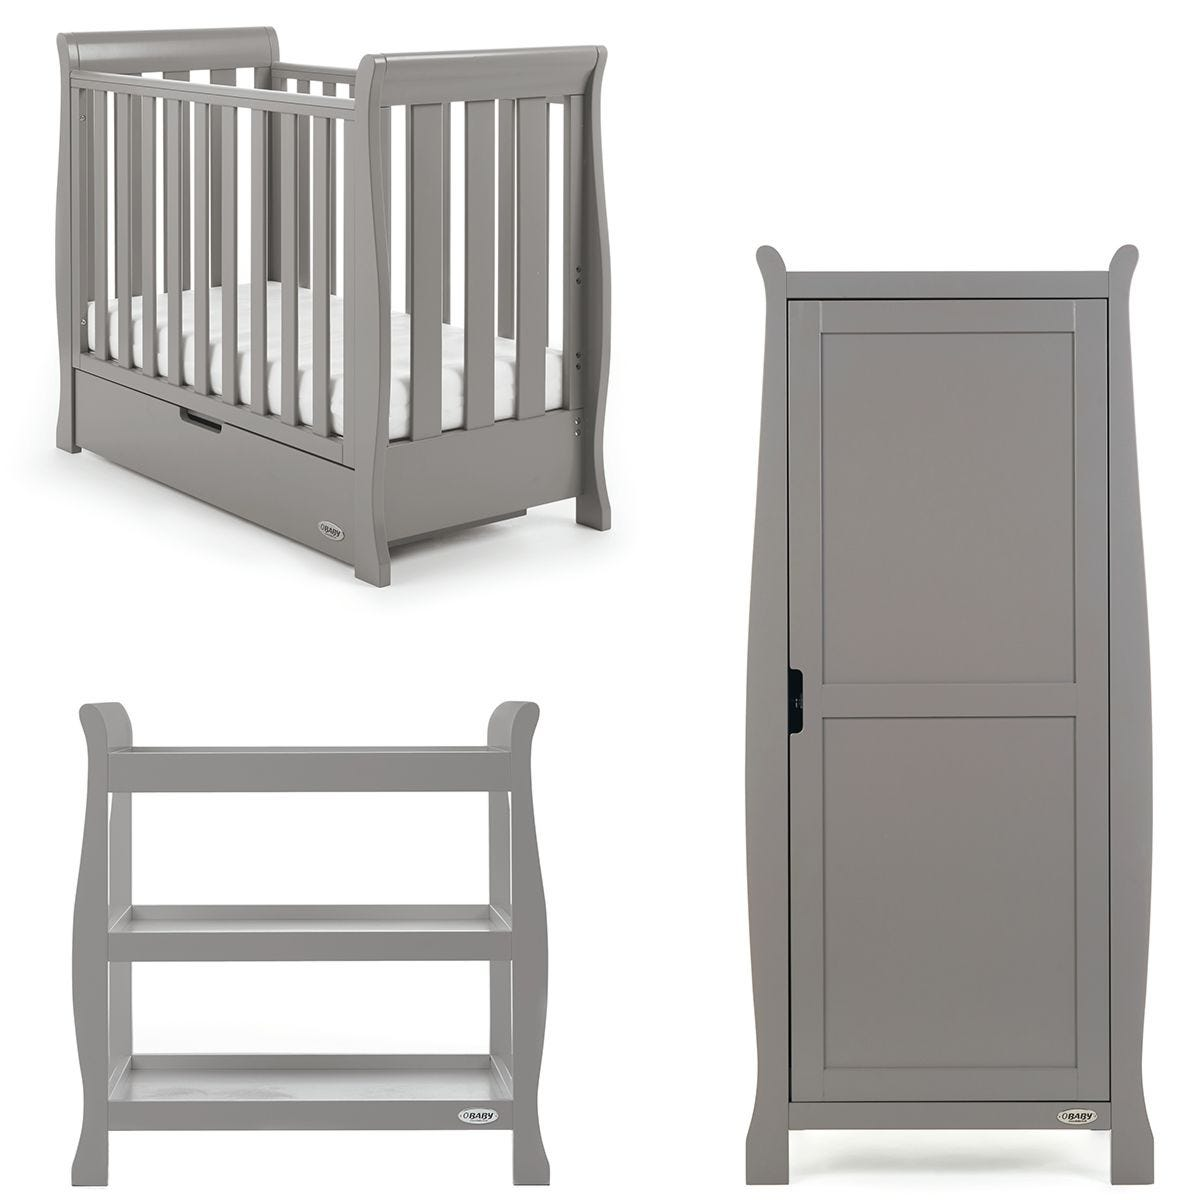 Obaby Stamford Space Saver Sleigh 3 Piece Room Set - Taupe Grey